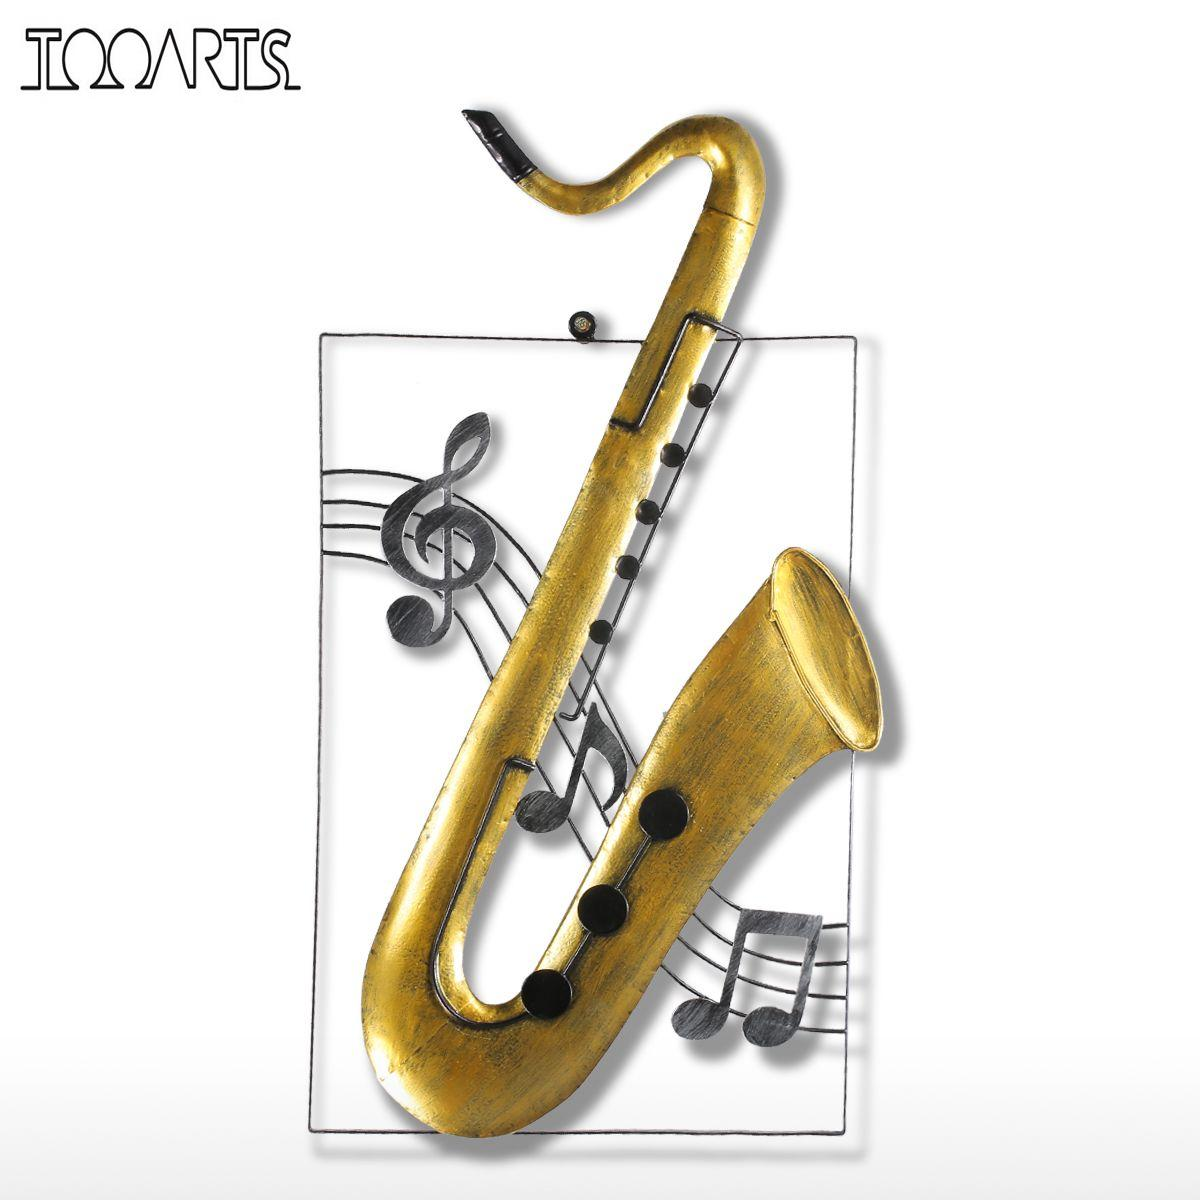 Tooarts Metal Sculpture Violin Guitar Saxophone Hanging Ornament Home Decor Wall Hangings Music Instrument Handmade Craft